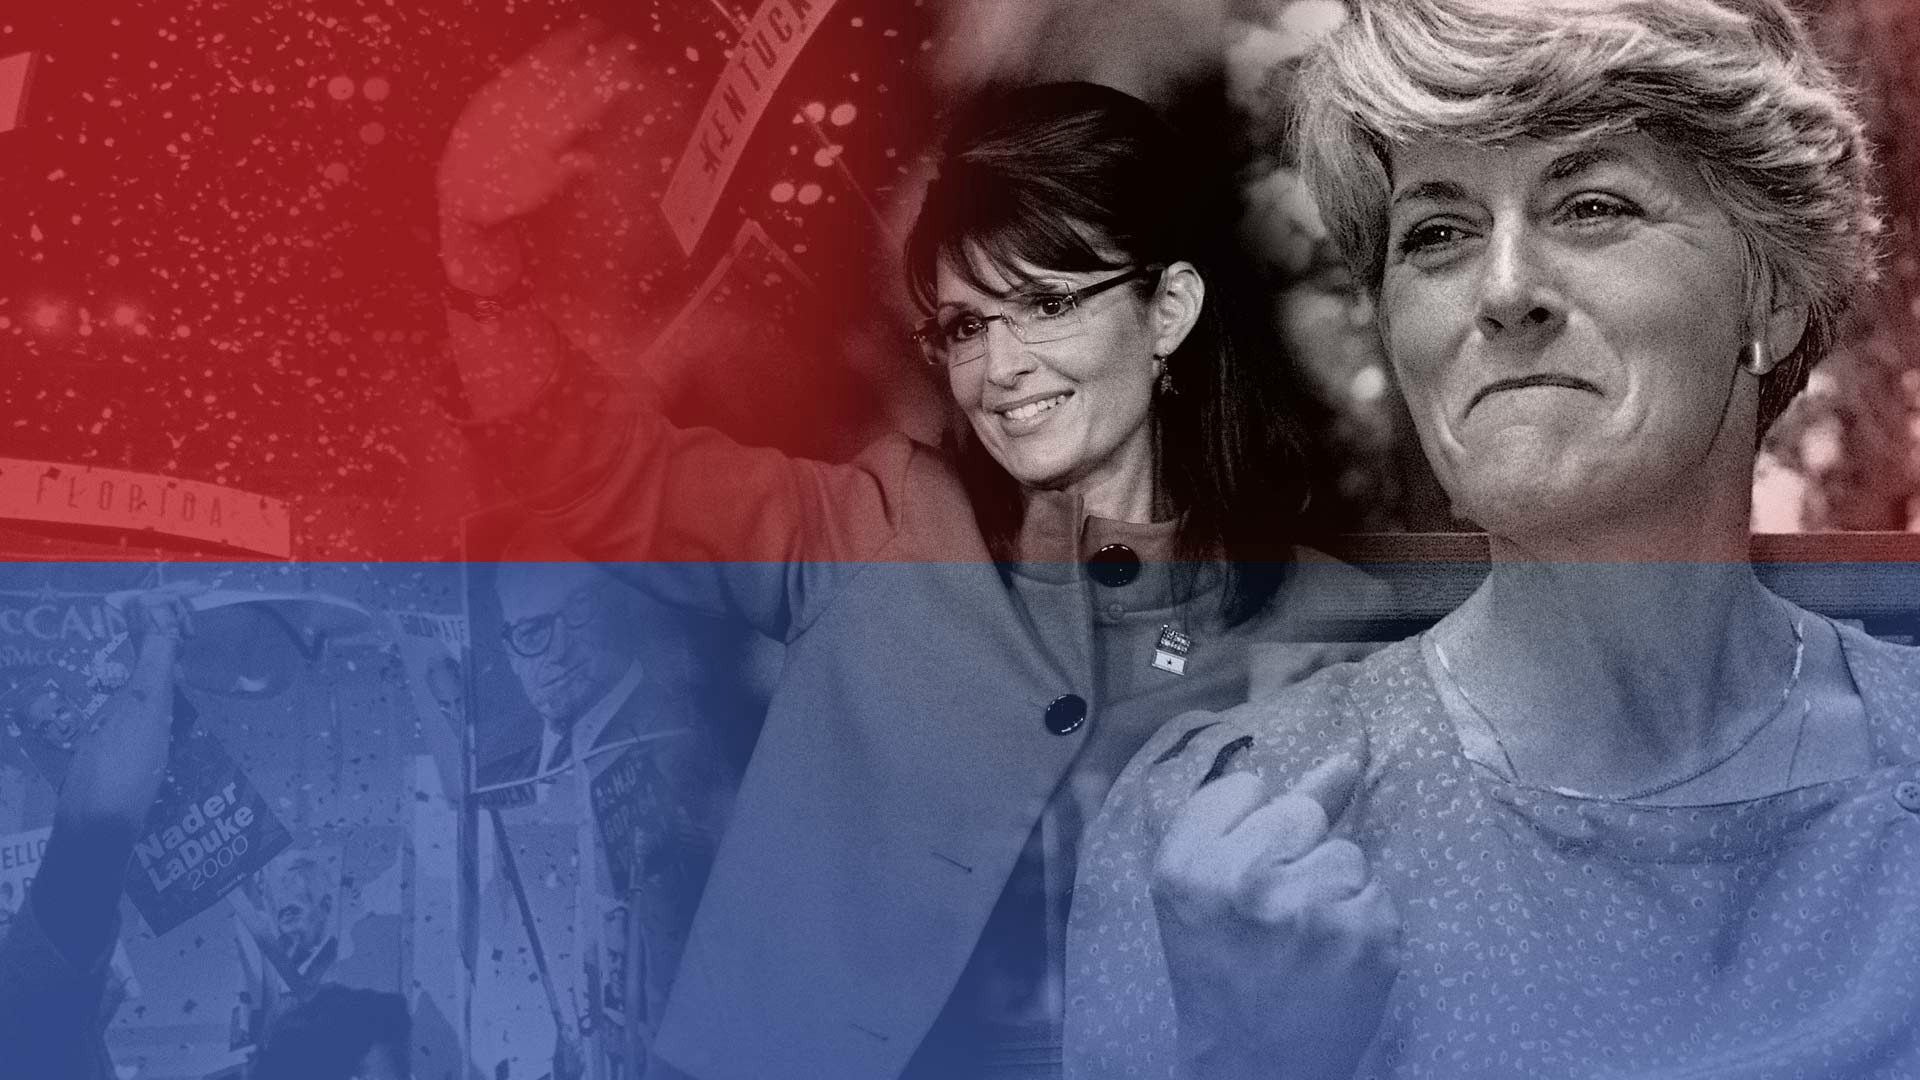 Contenders - 16 for '16: Ferraro/Palin - The Trailblazers